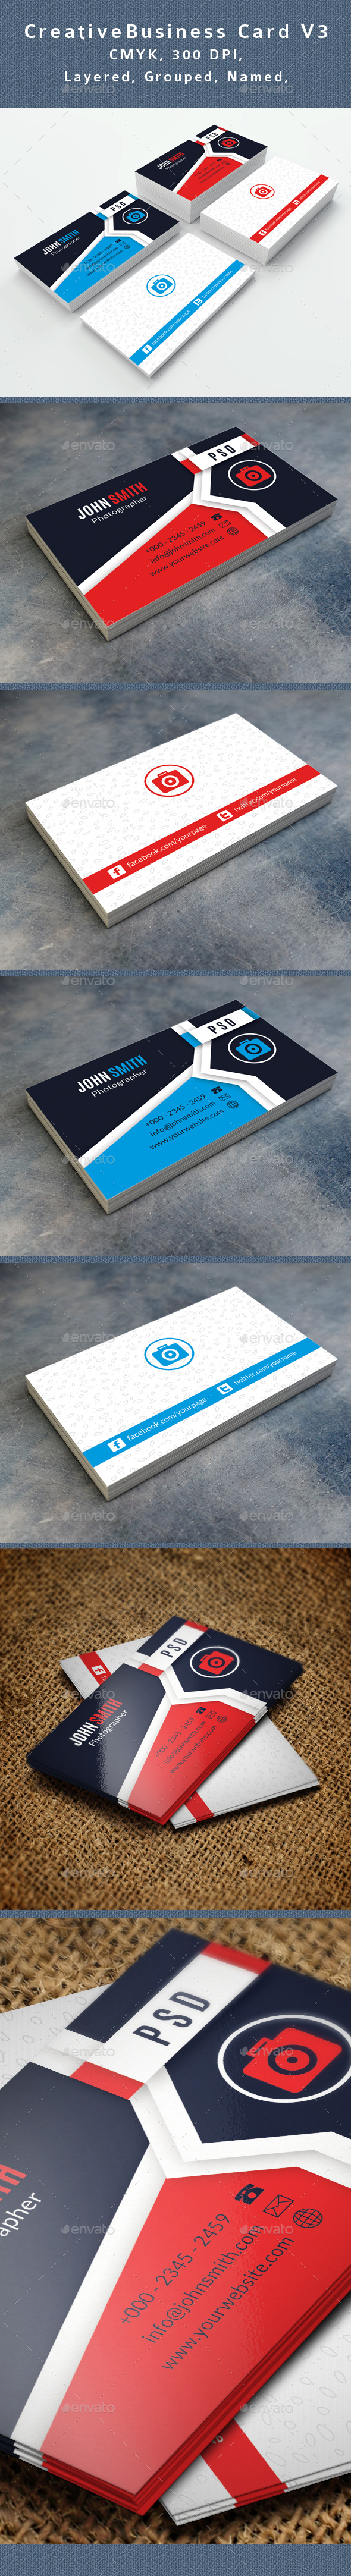 Photographer Business Card V3 - Creative Business Cards